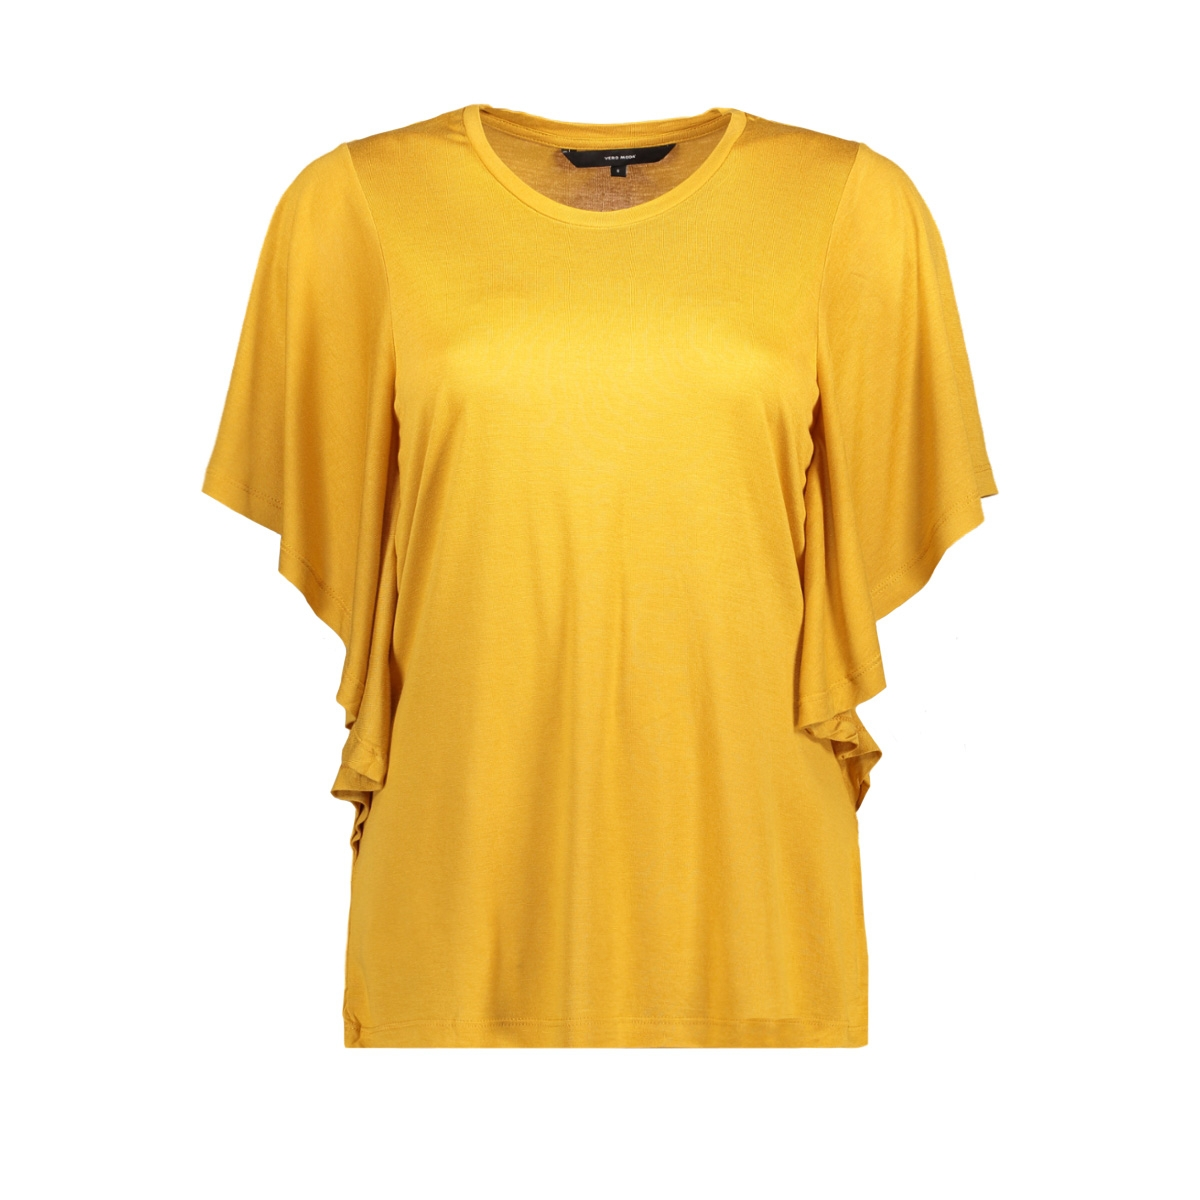 vmirfi s/s top sb8  10193608 vero moda t-shirt harvest gold